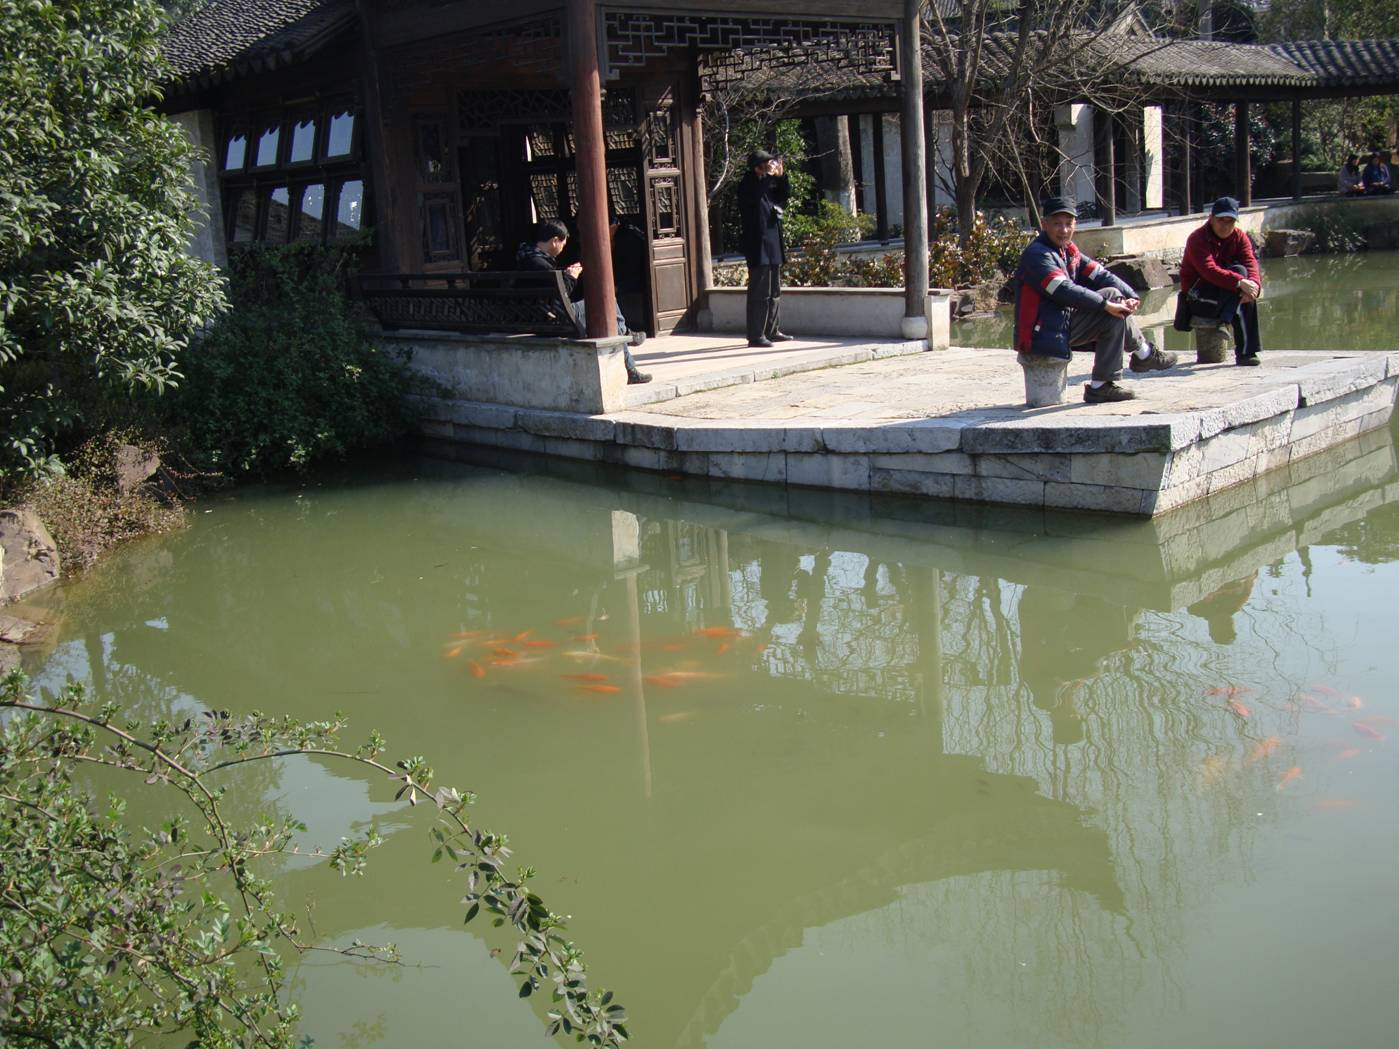 Picture:  Goldfish school in the pond.  Wuxi old city, Wuxi, China